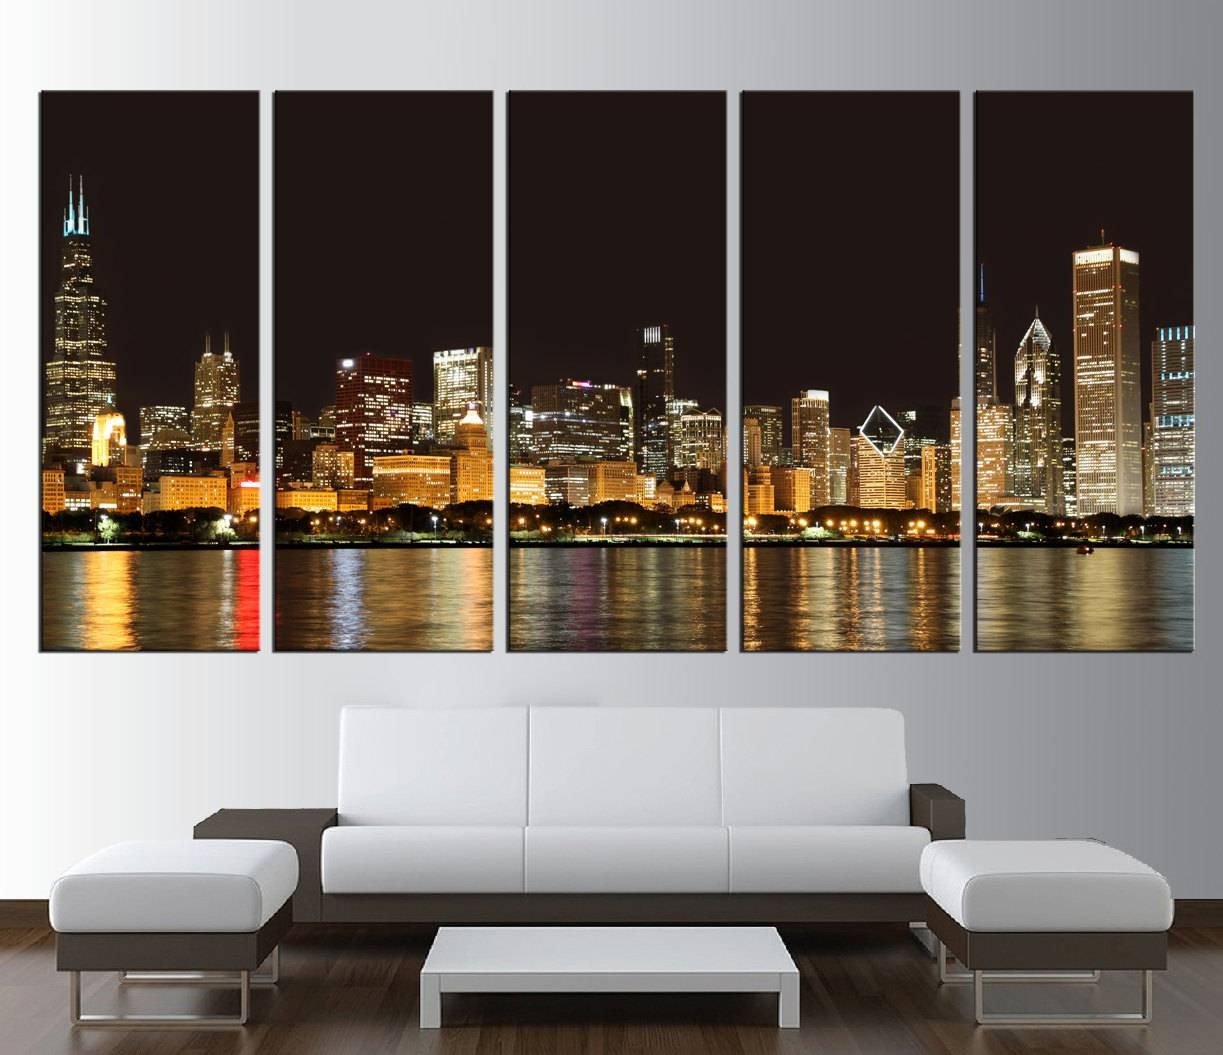 Wall Art Design: Extra Large Wall Art Rectangle Black Gold With Current Extra Large Wall Art Prints (View 4 of 20)